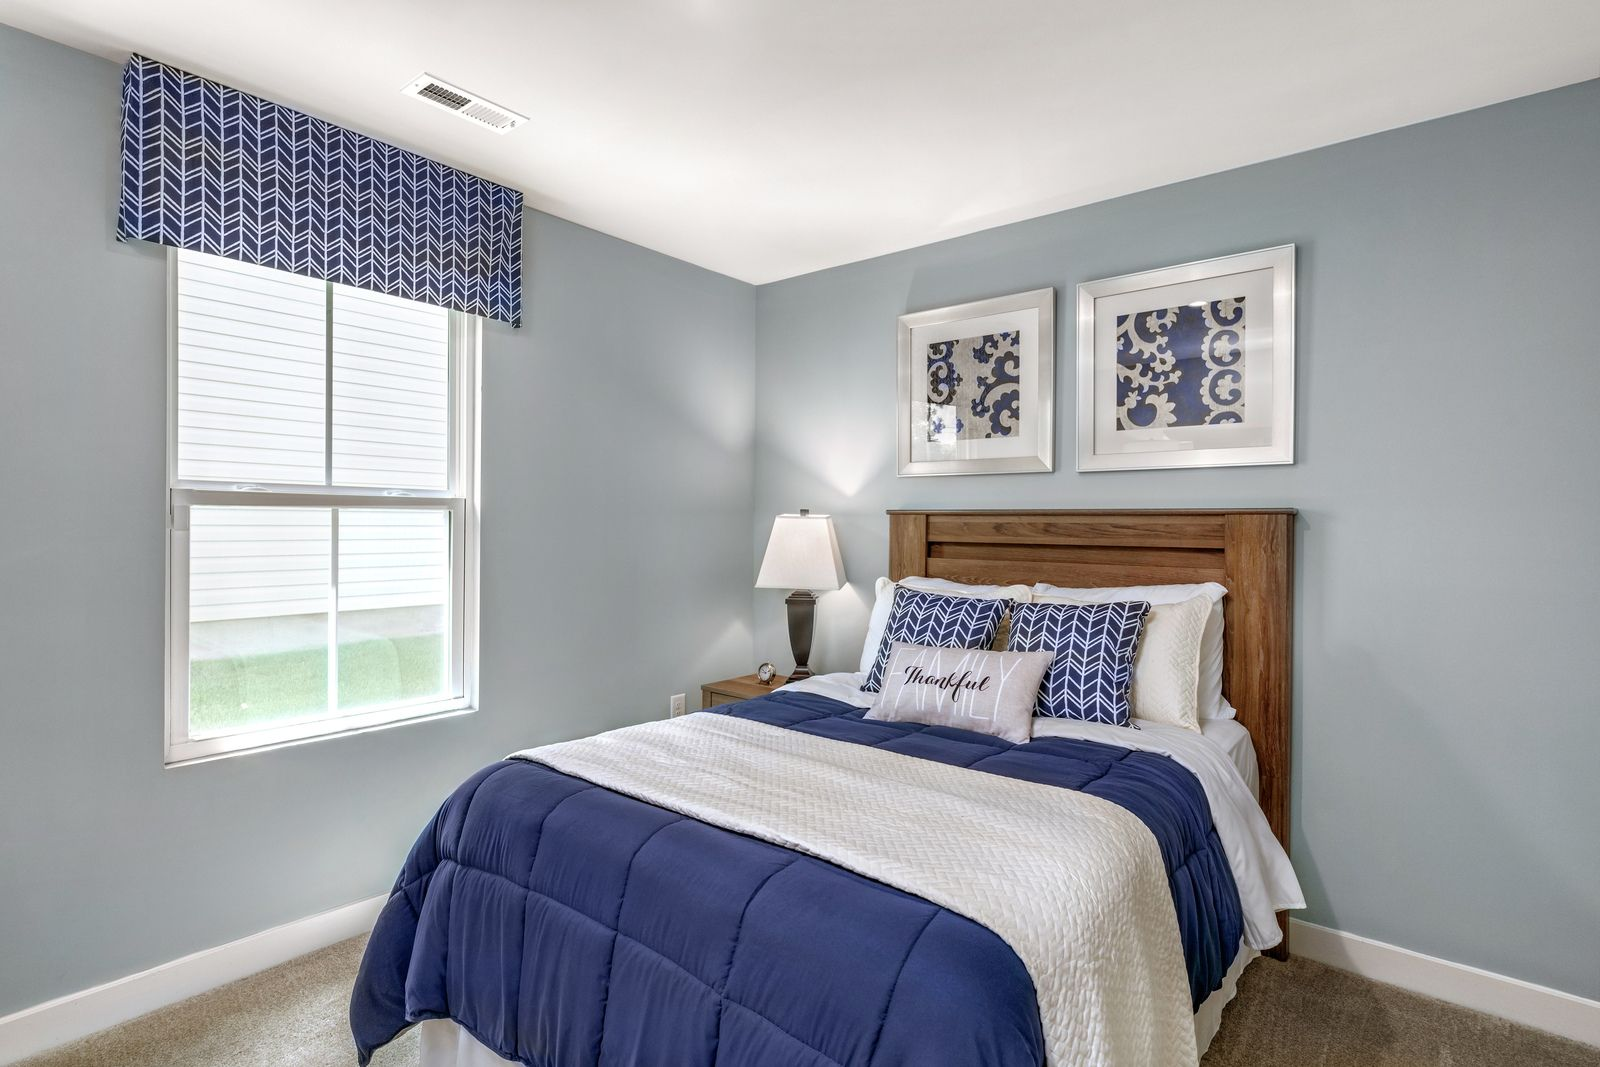 Bedroom featured in the Aruba Bay By Ryan Homes in Akron, OH